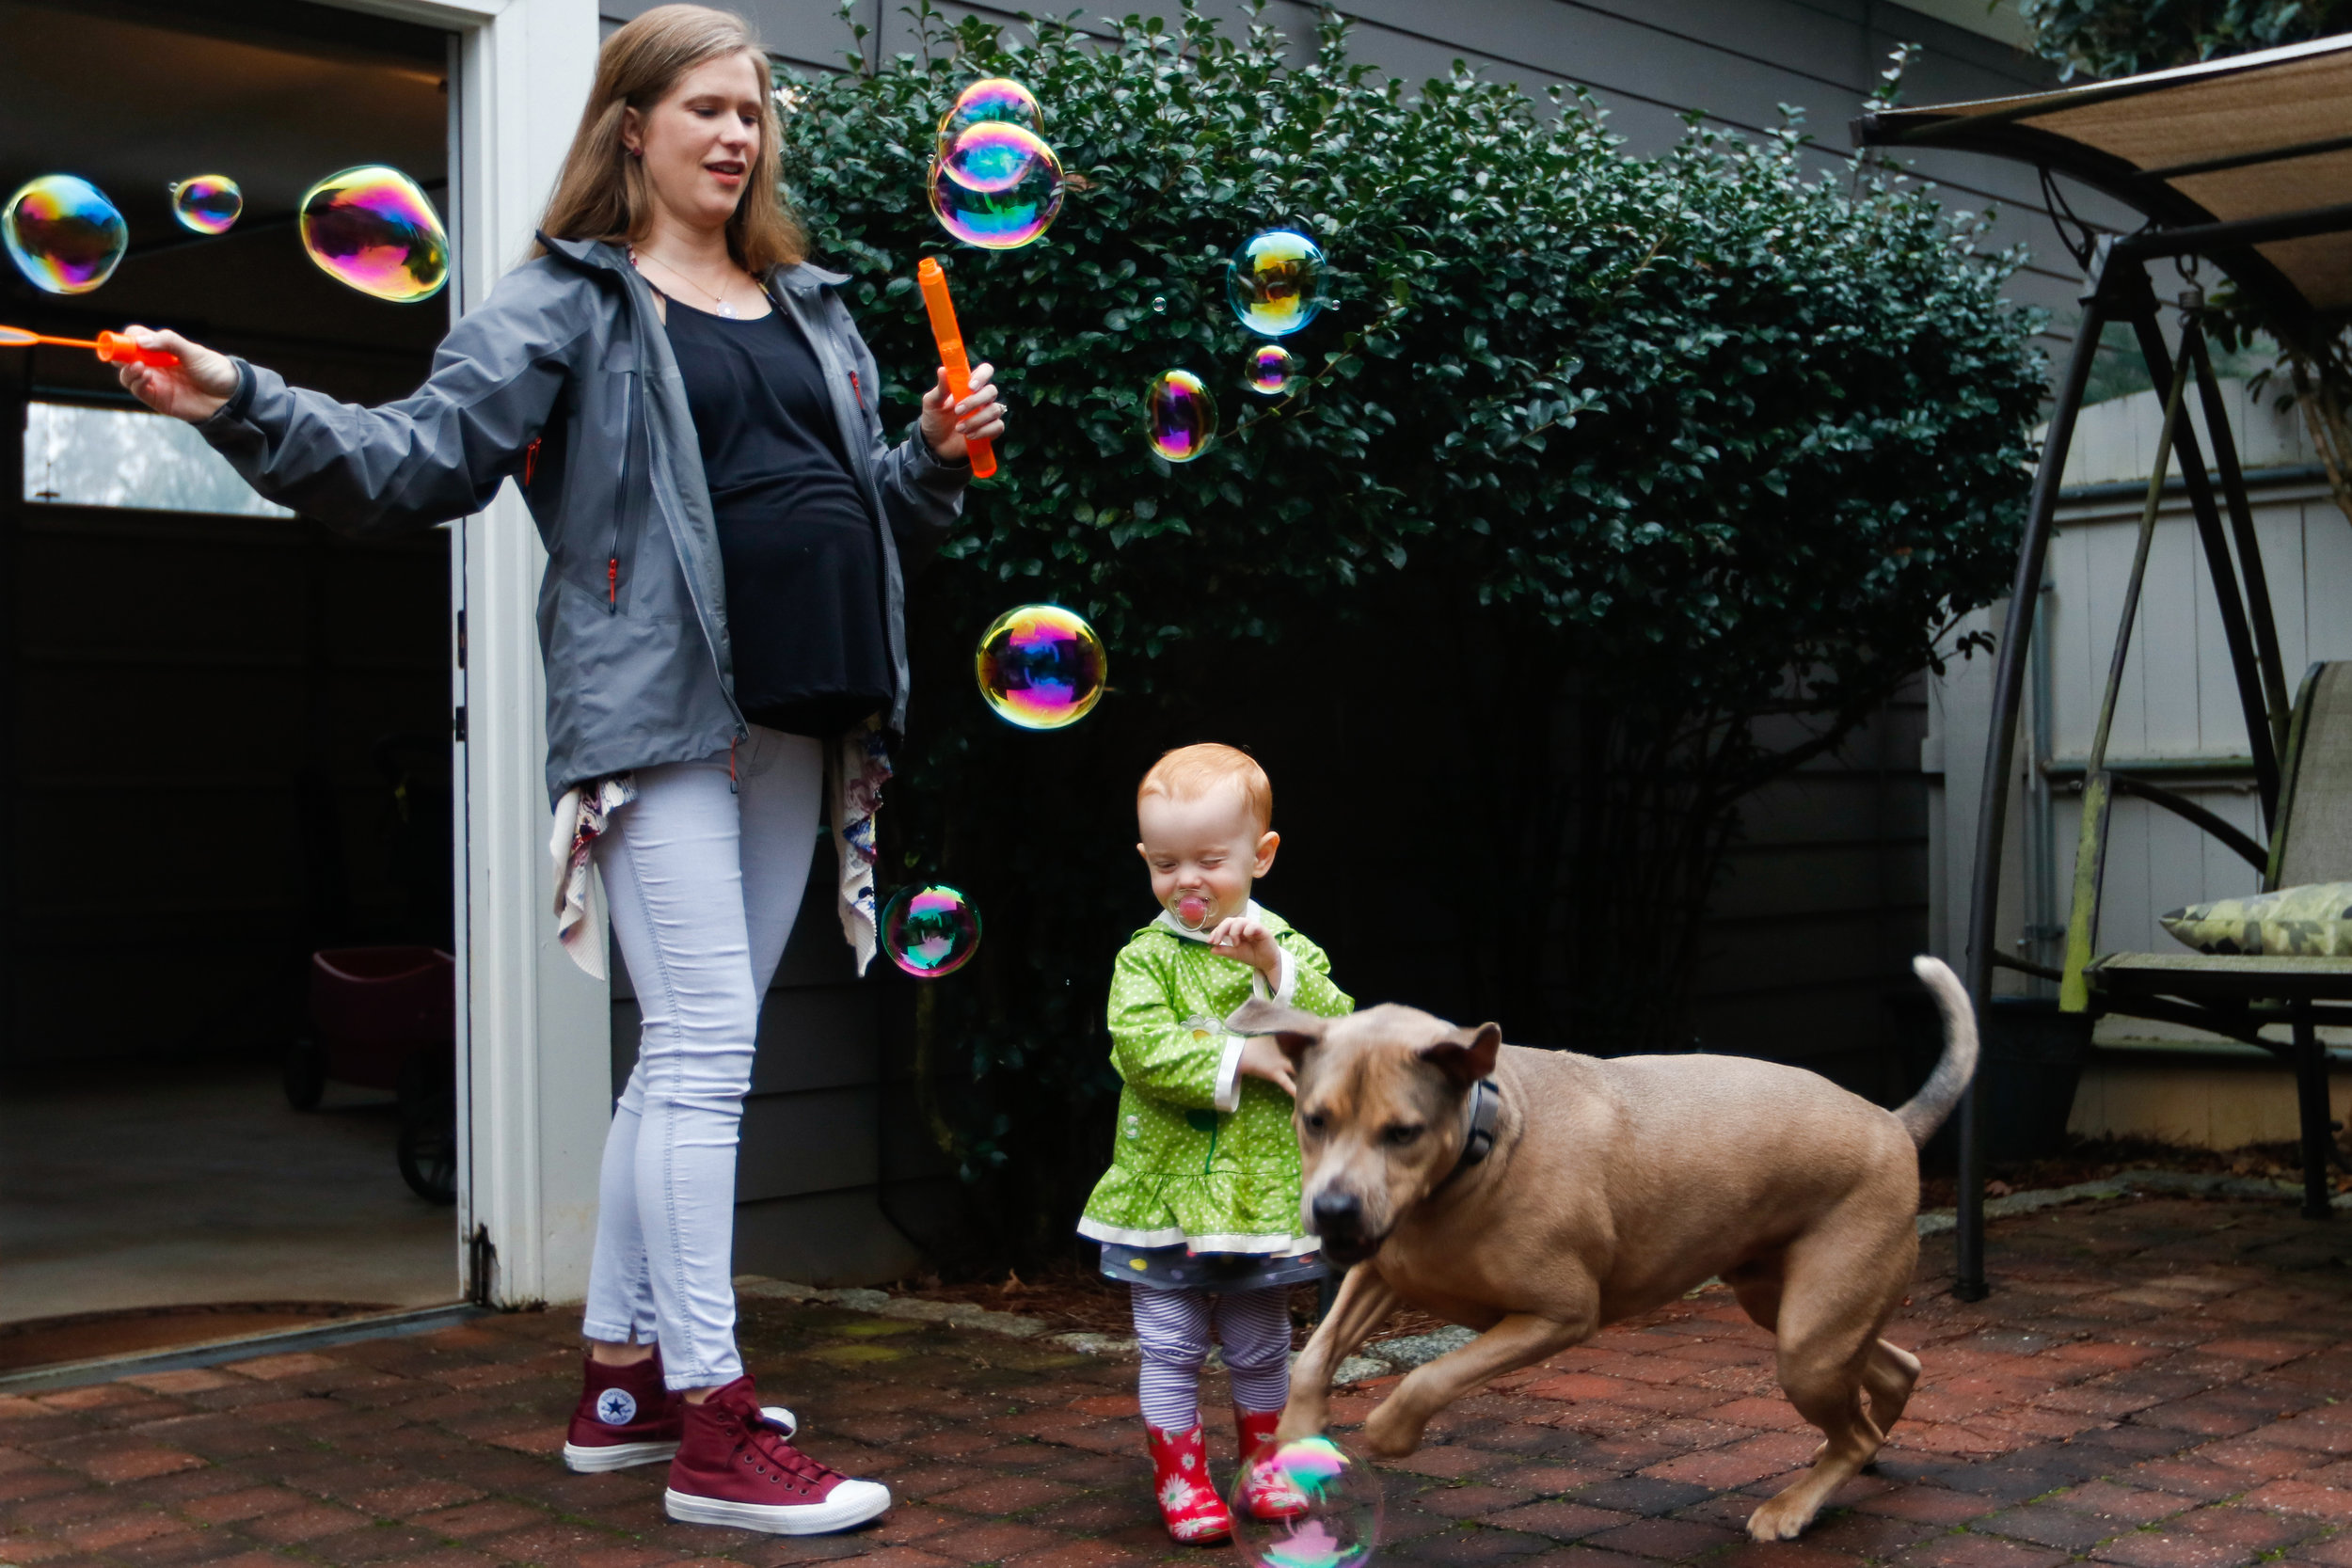 Melanie Zareie, 18-month-old daughter Juniper and dog Willy play with bubbles outside their Athens, Georgia, home on Monday, March 19, 2018.